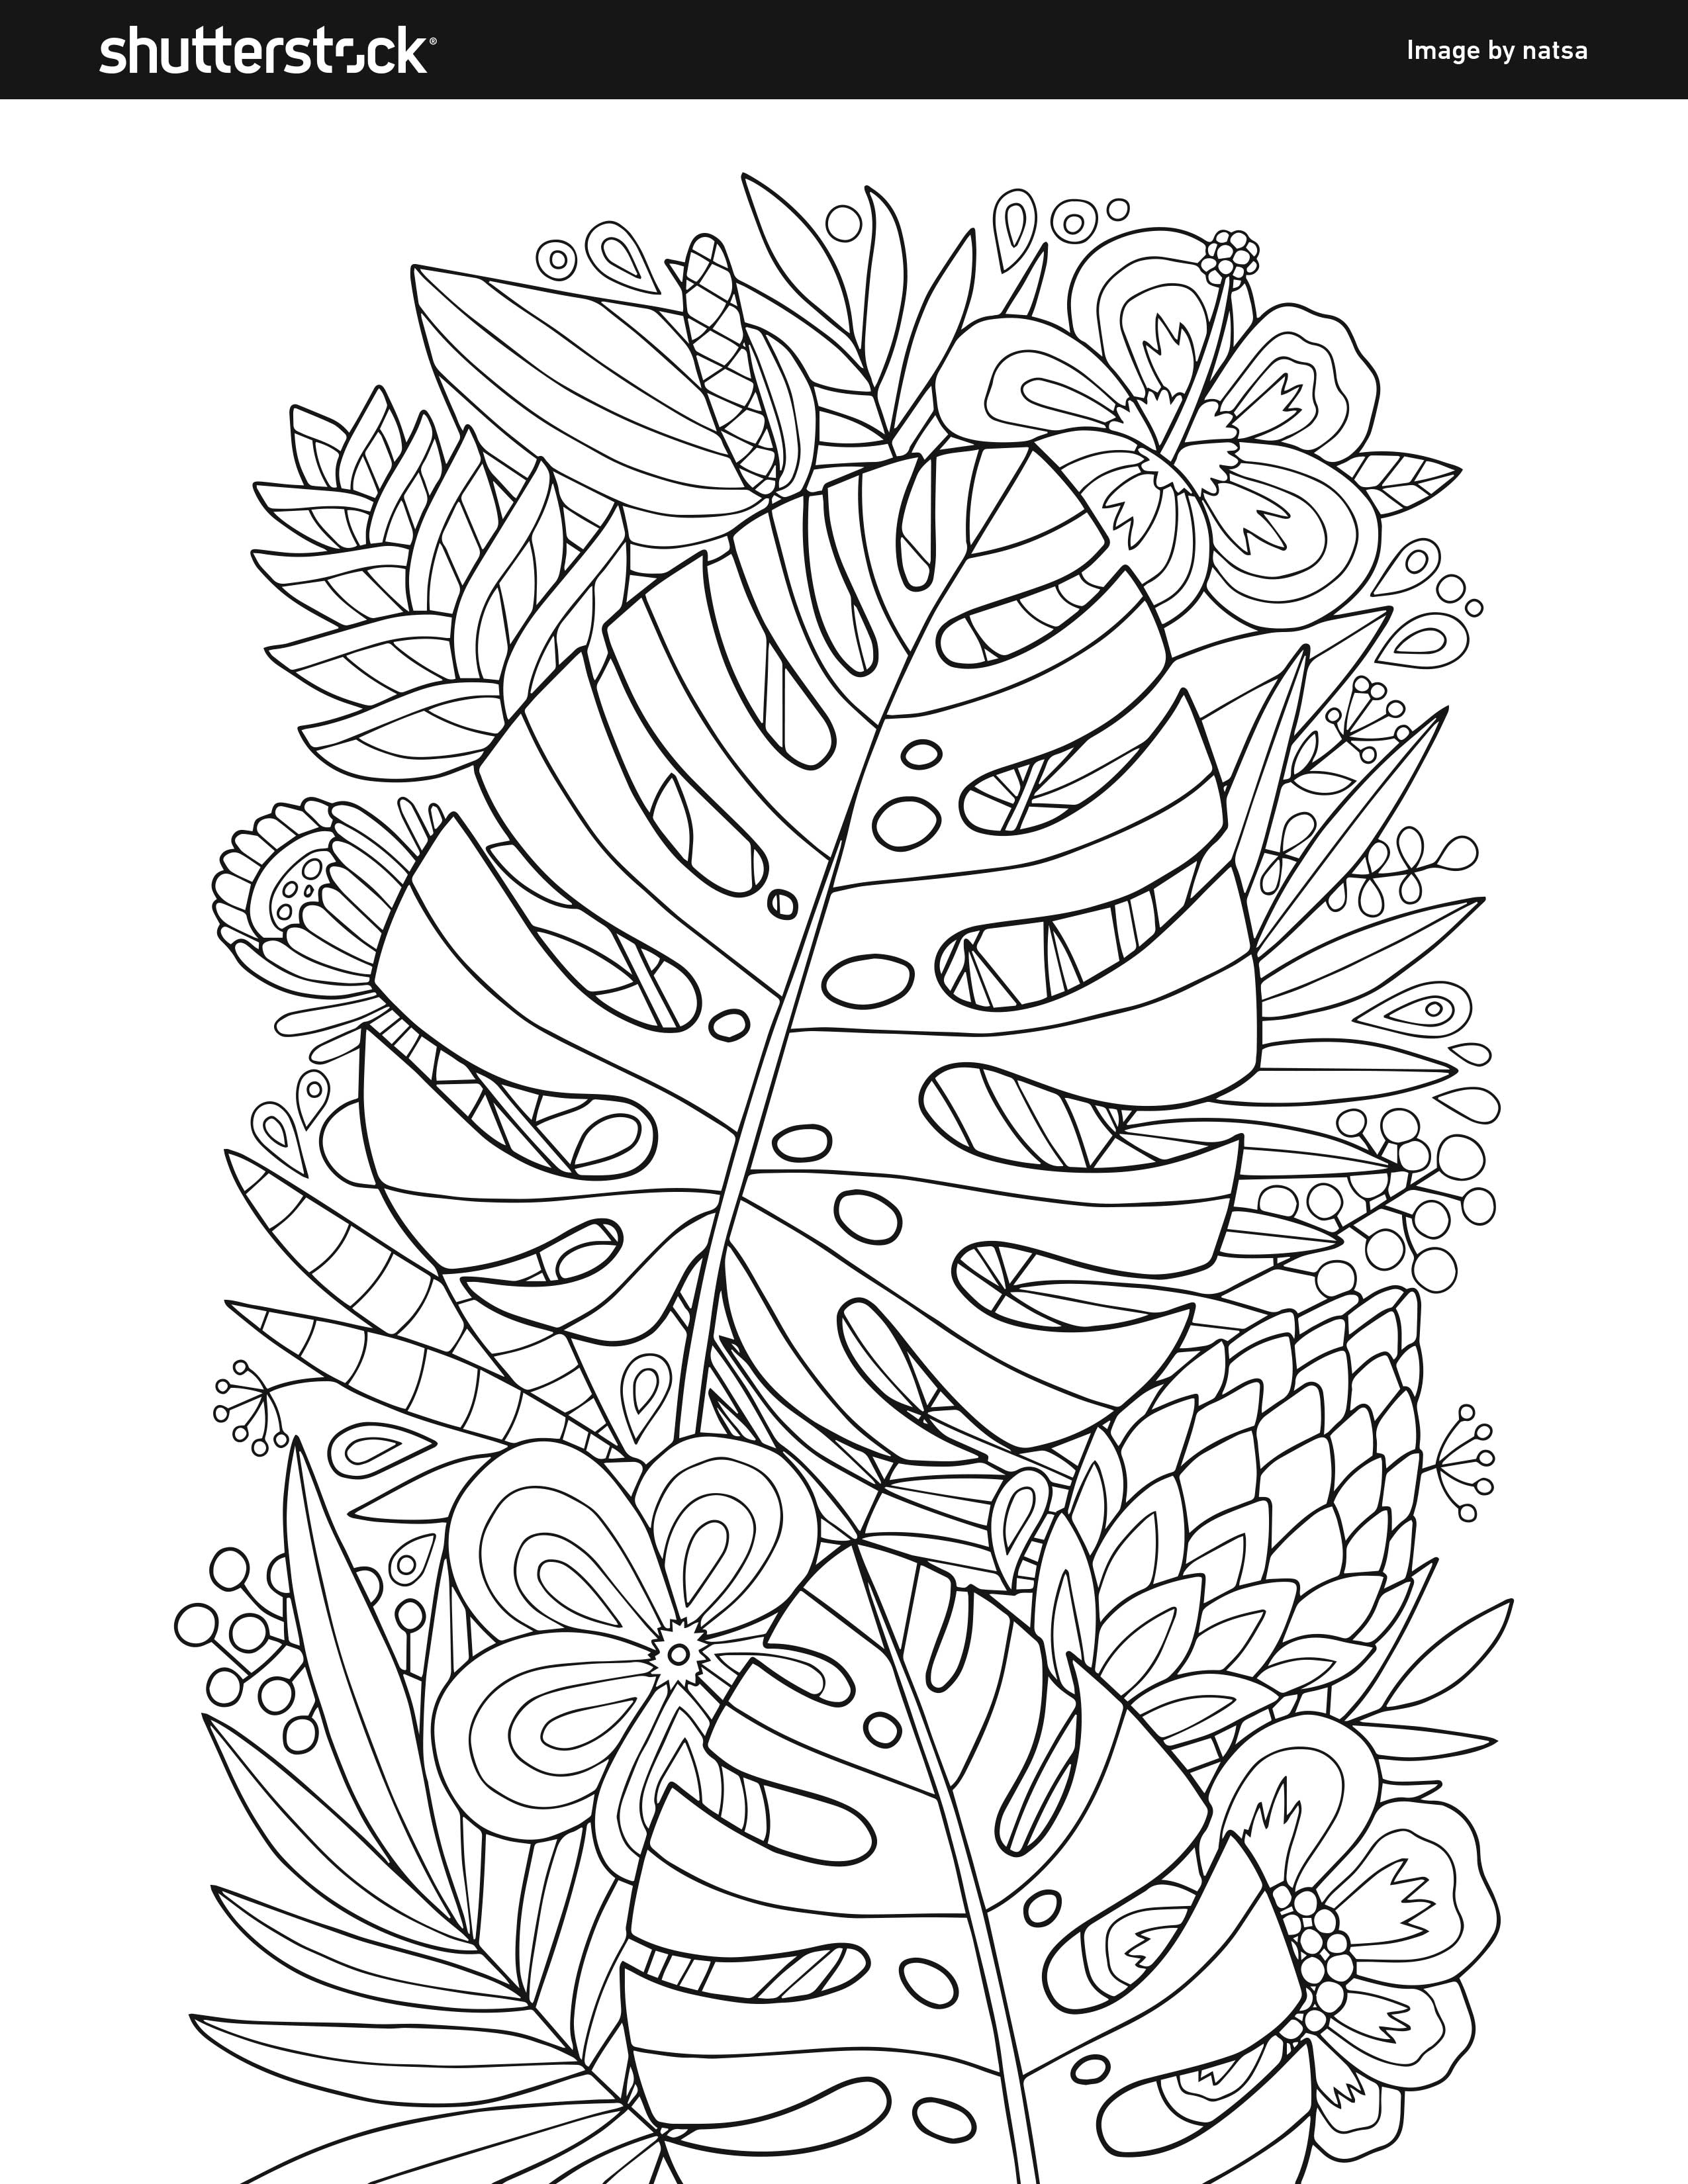 Free Coloring Book – 8 Free And Fun Pages To Print And Color In